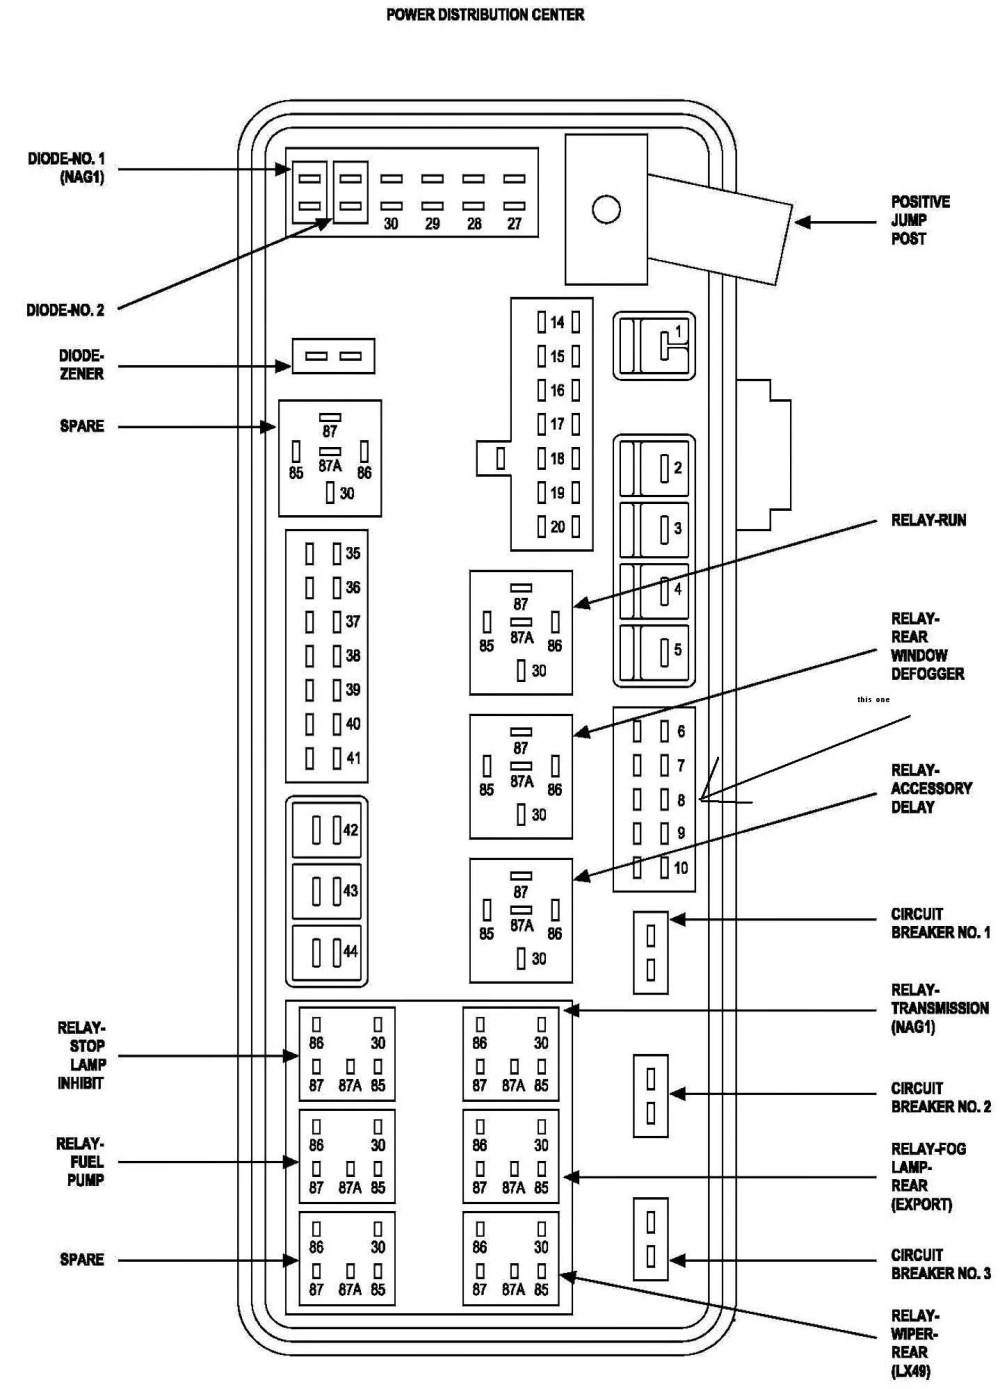 medium resolution of 98 dodge fuse box database wiring diagram1998 dodge ram fuse box diagram free download wiring diagrams